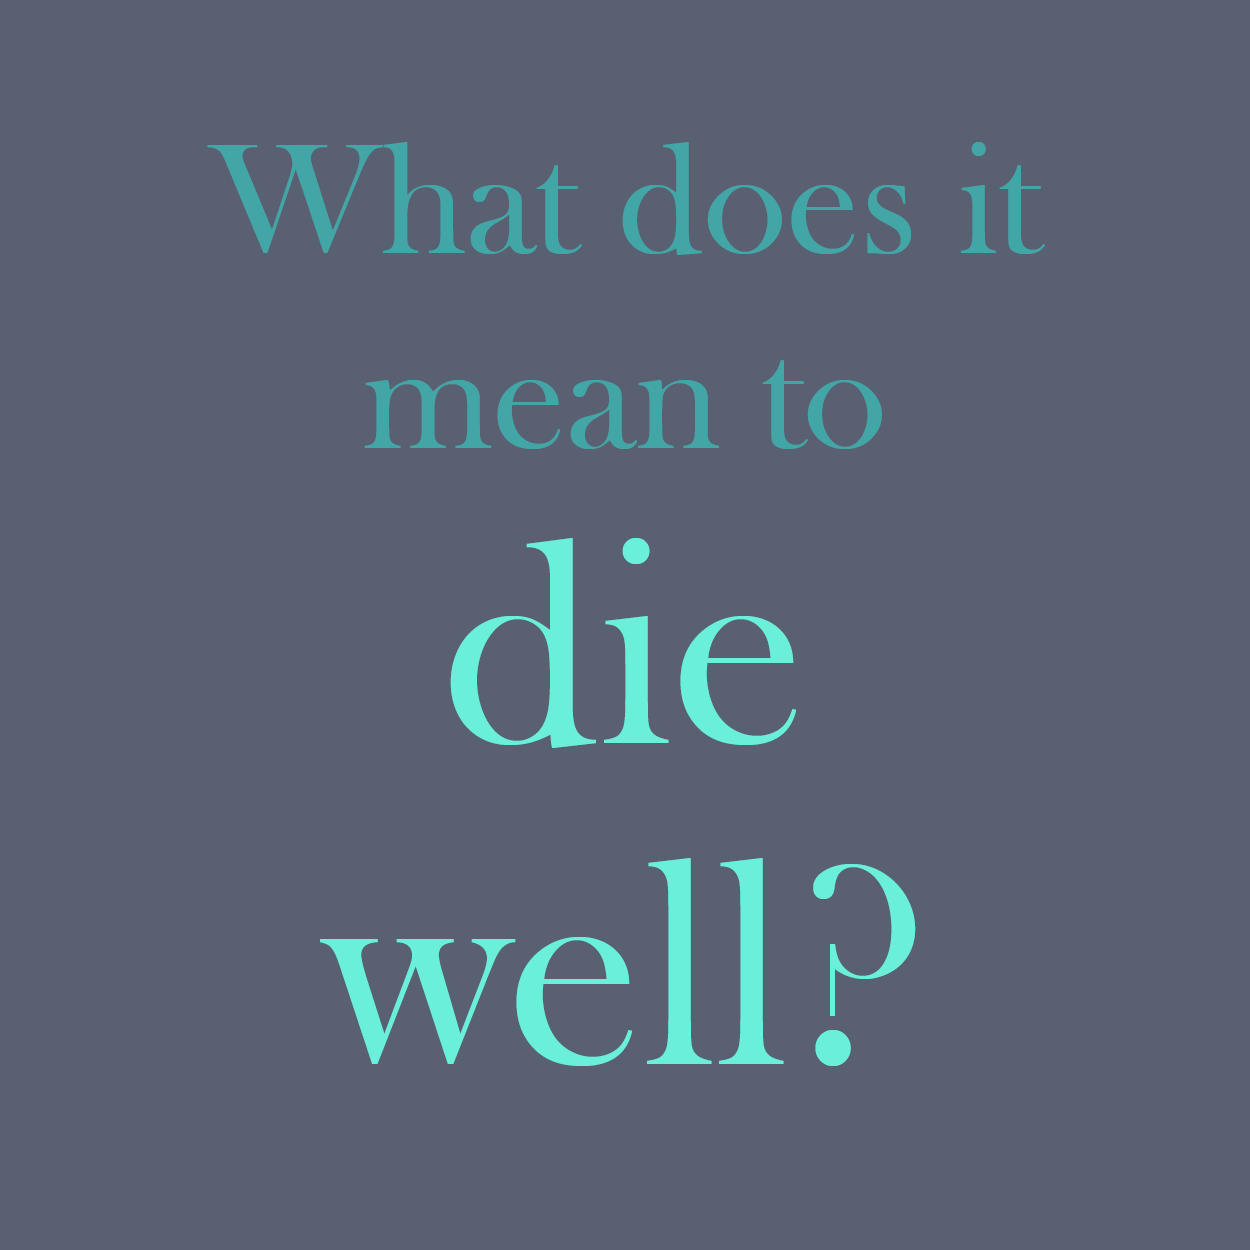 What does it mean to die well?